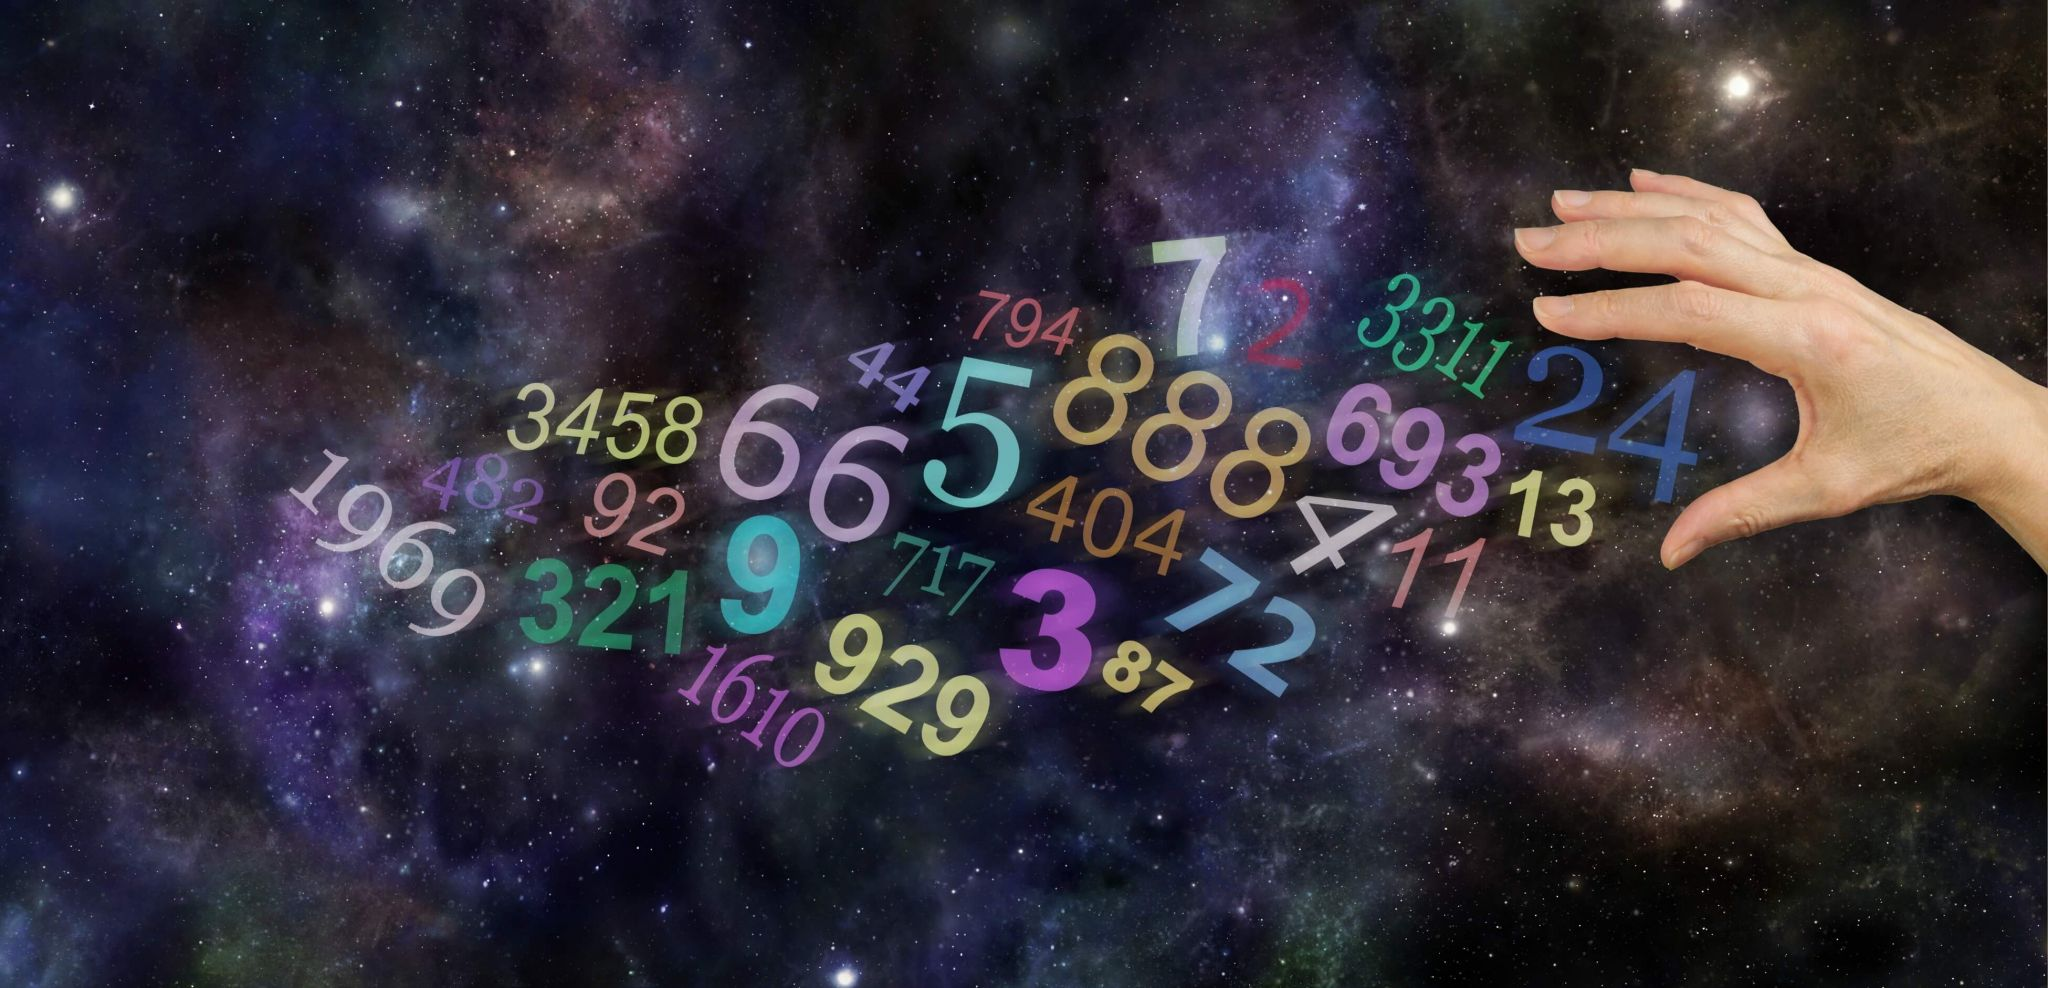 numerology - multiple numbers on a starry background floating towards an outstretched hand